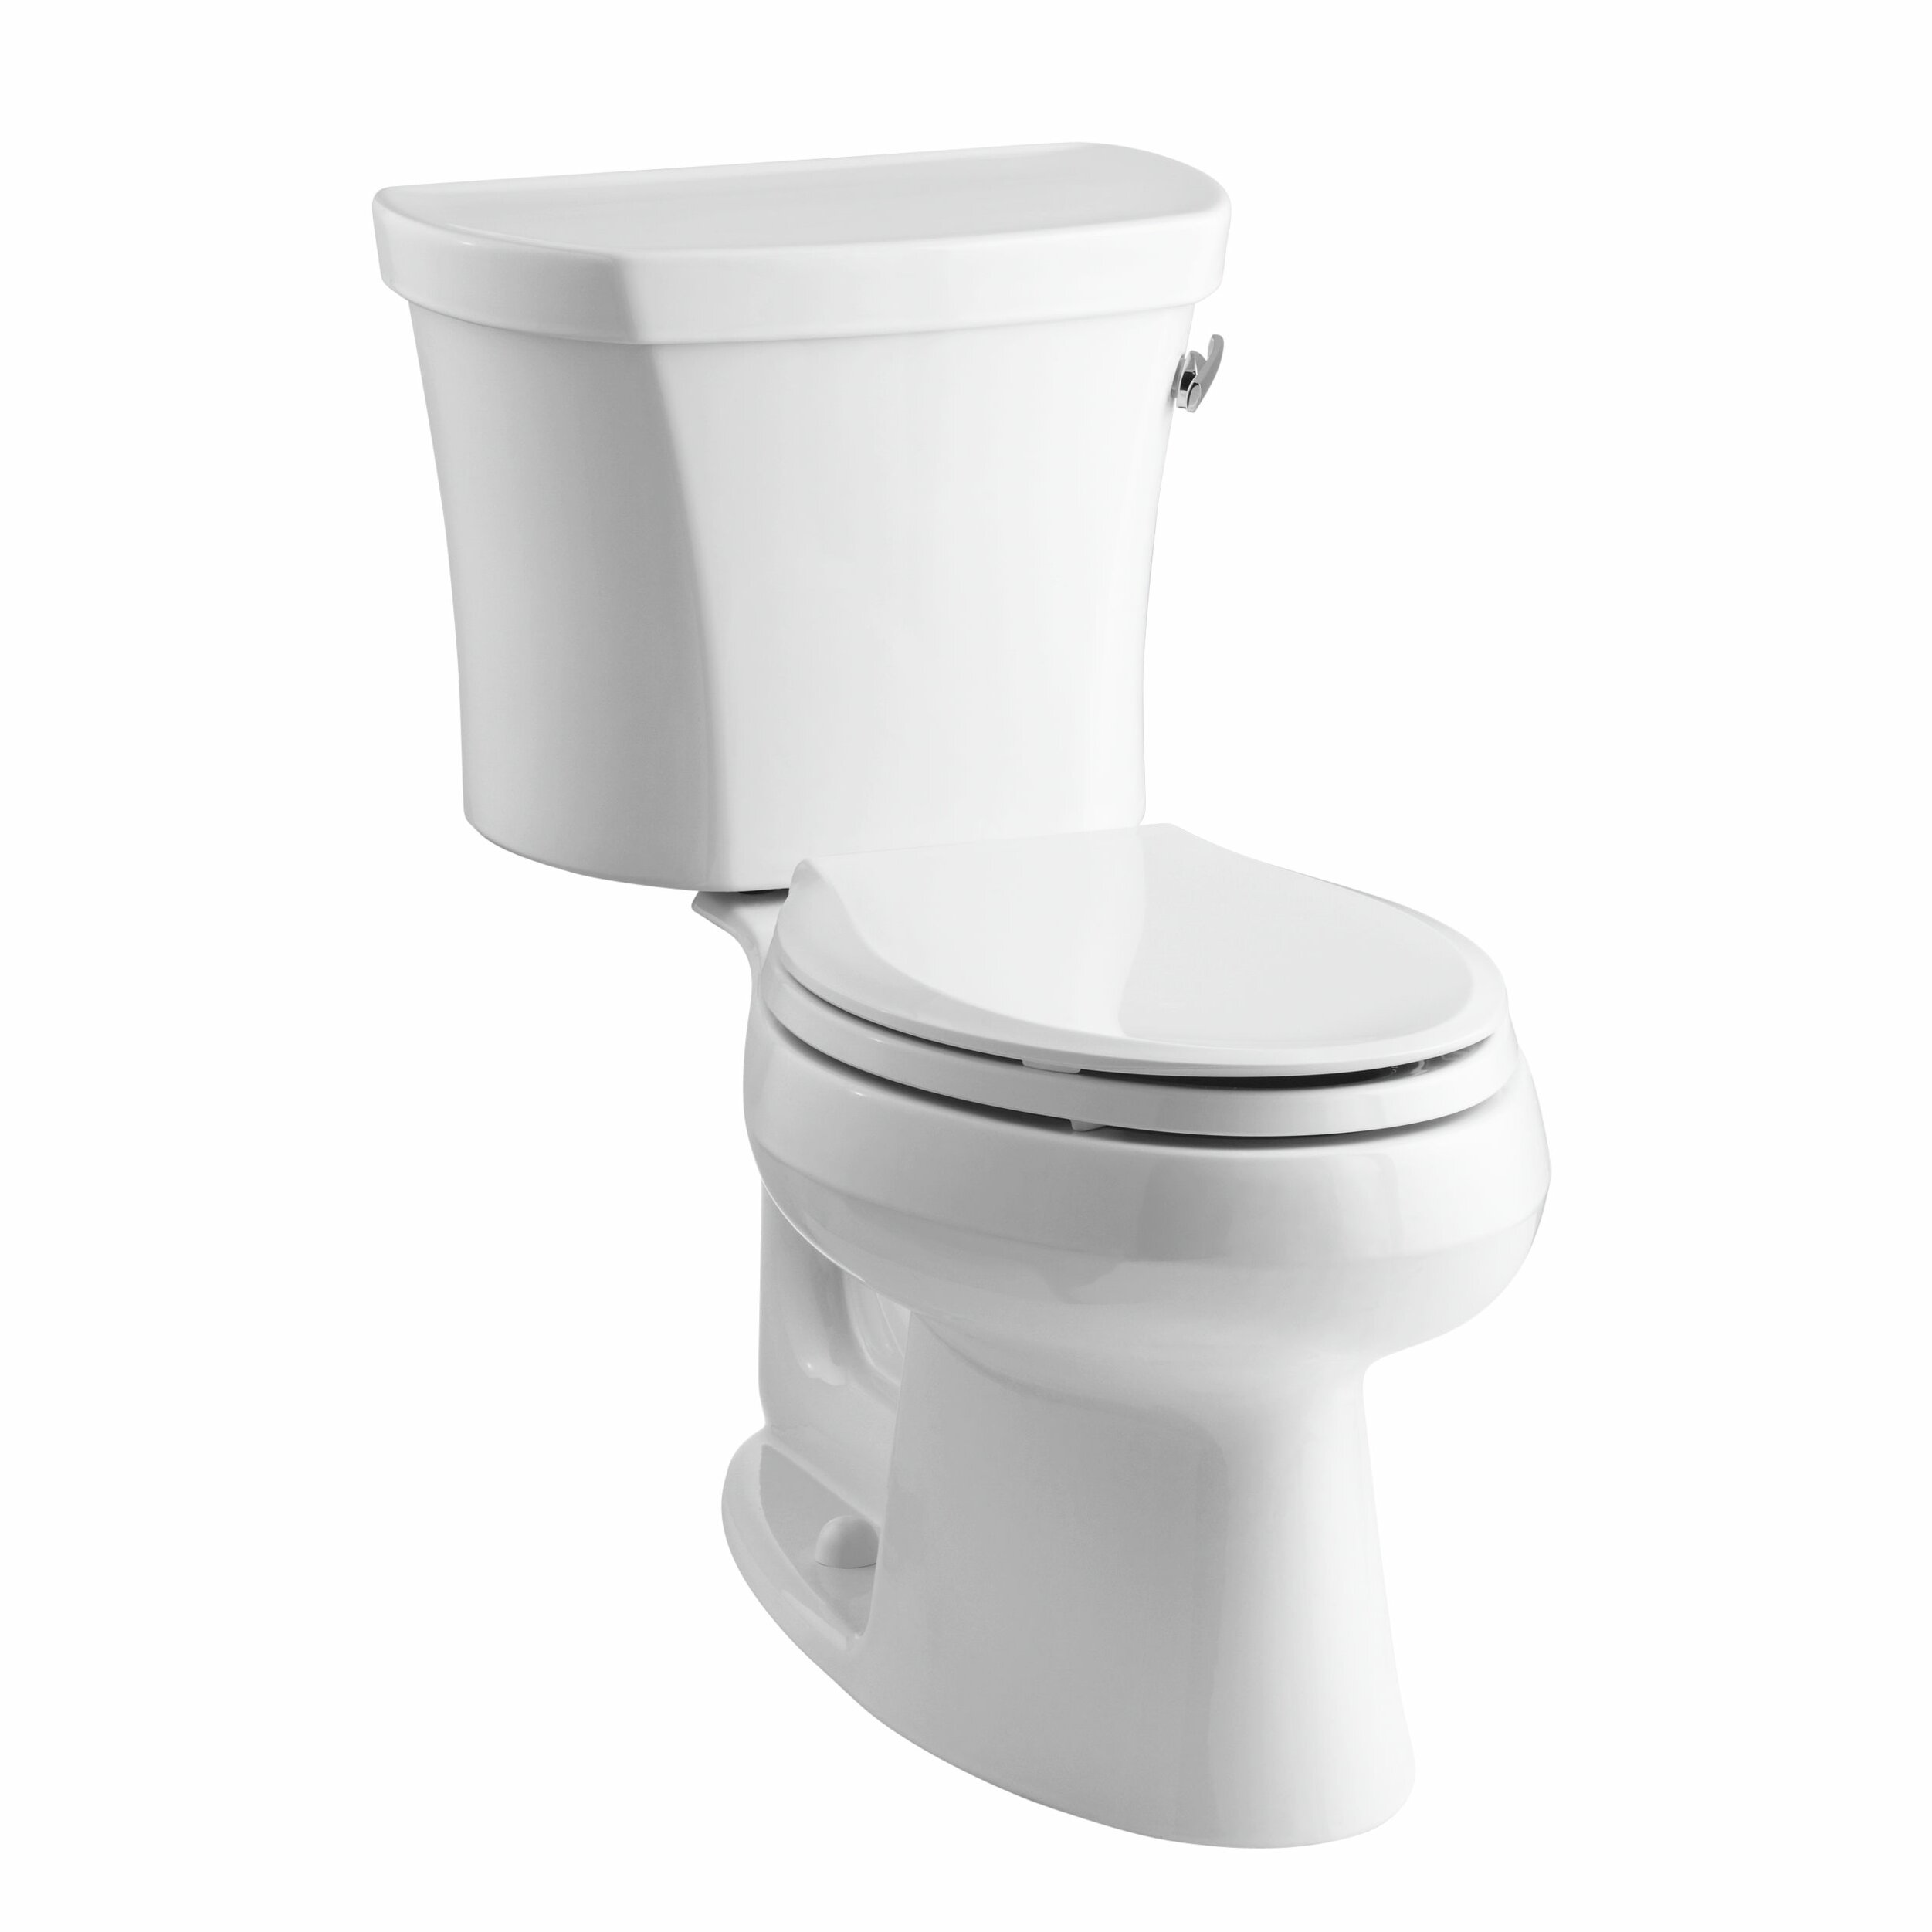 Toilet Flush Cover : Kohler wellworth two piece elongated gpf toilet with